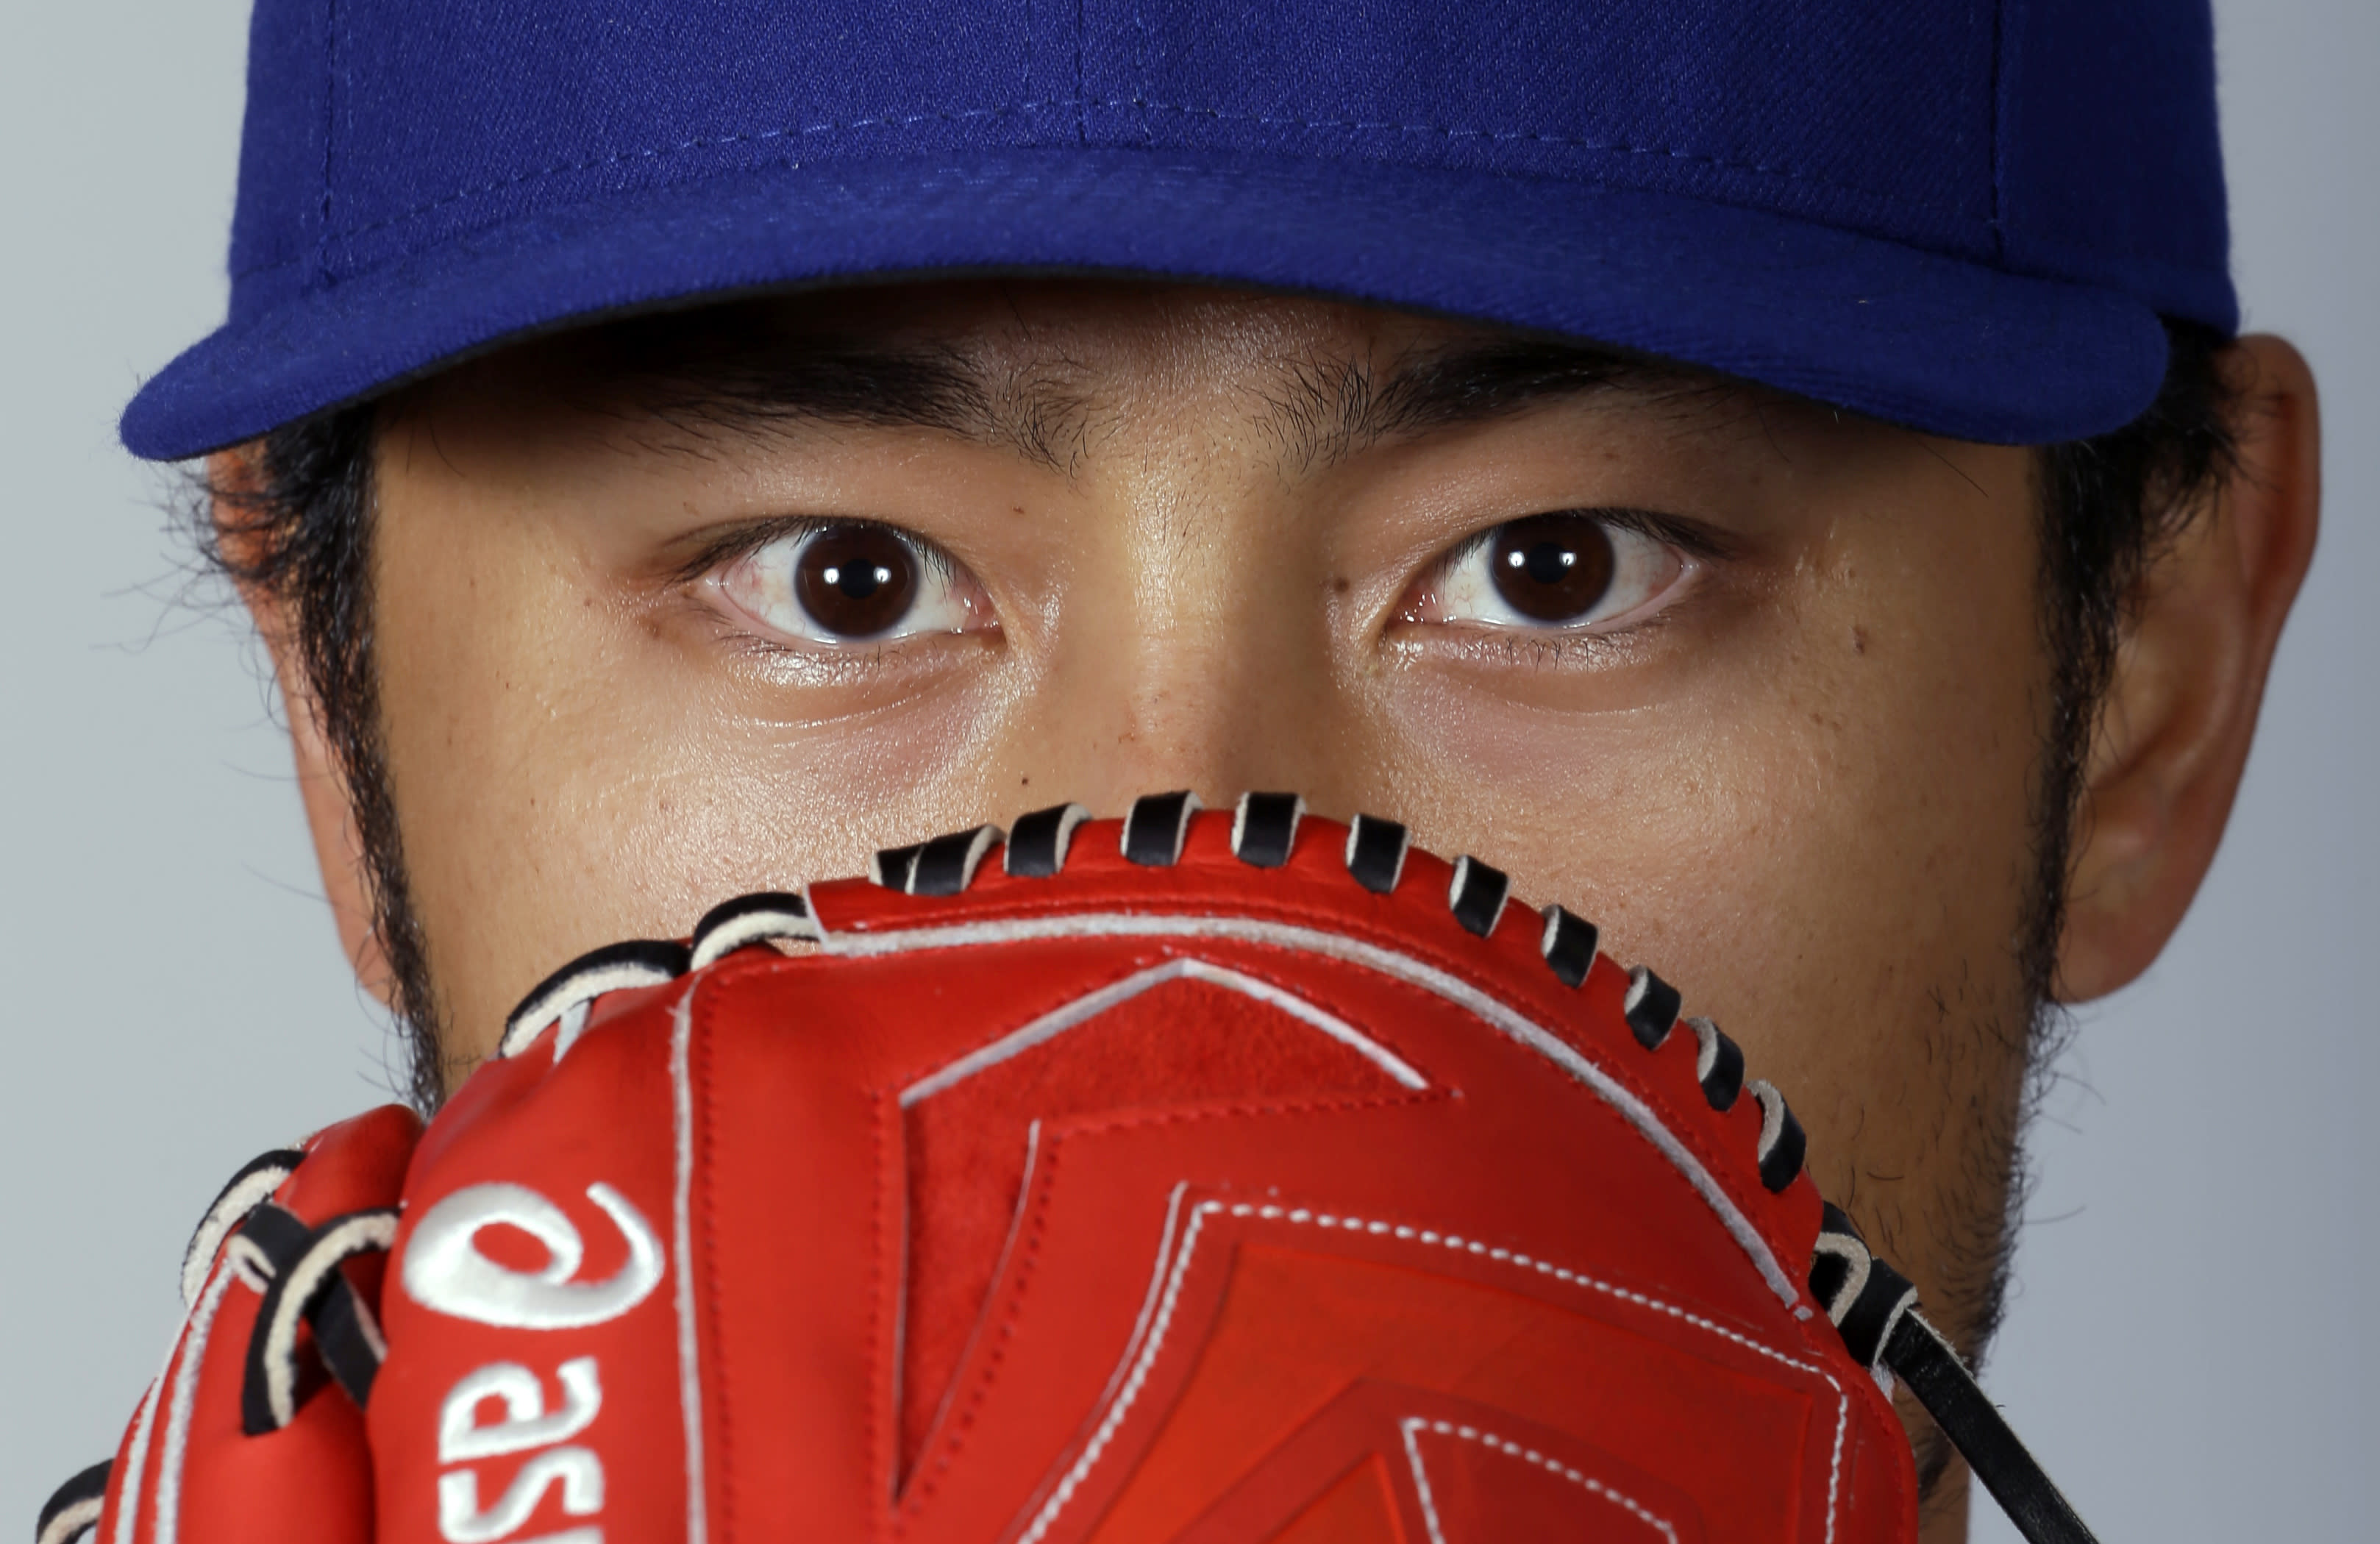 LEADING OFF: Lee, Darvish take the mound for spring debuts